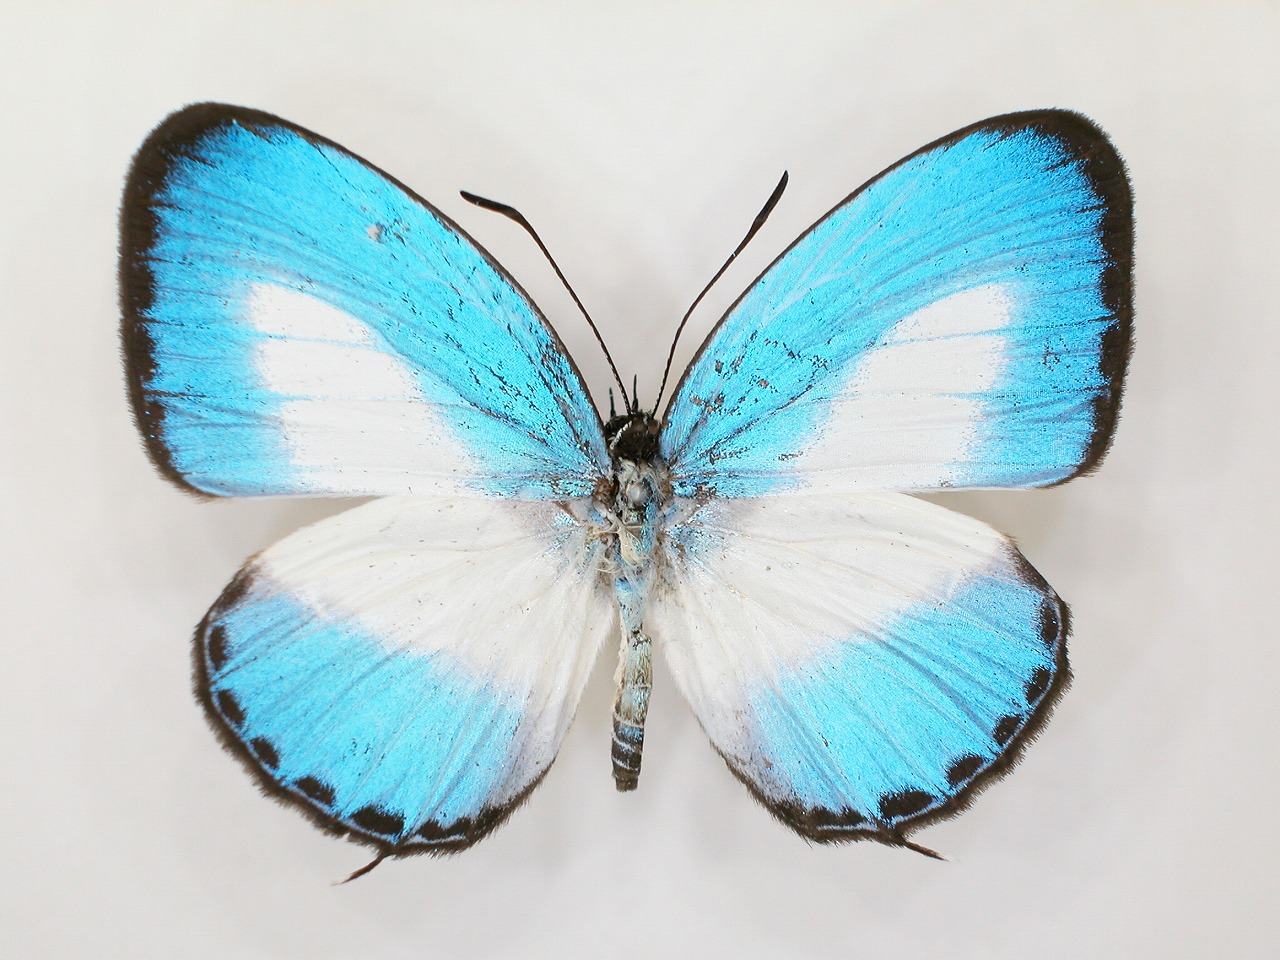 https://www.hitohaku.jp/material/l-material/butterfly-wing/5-lycaenidae/B1-273504_A.jpg